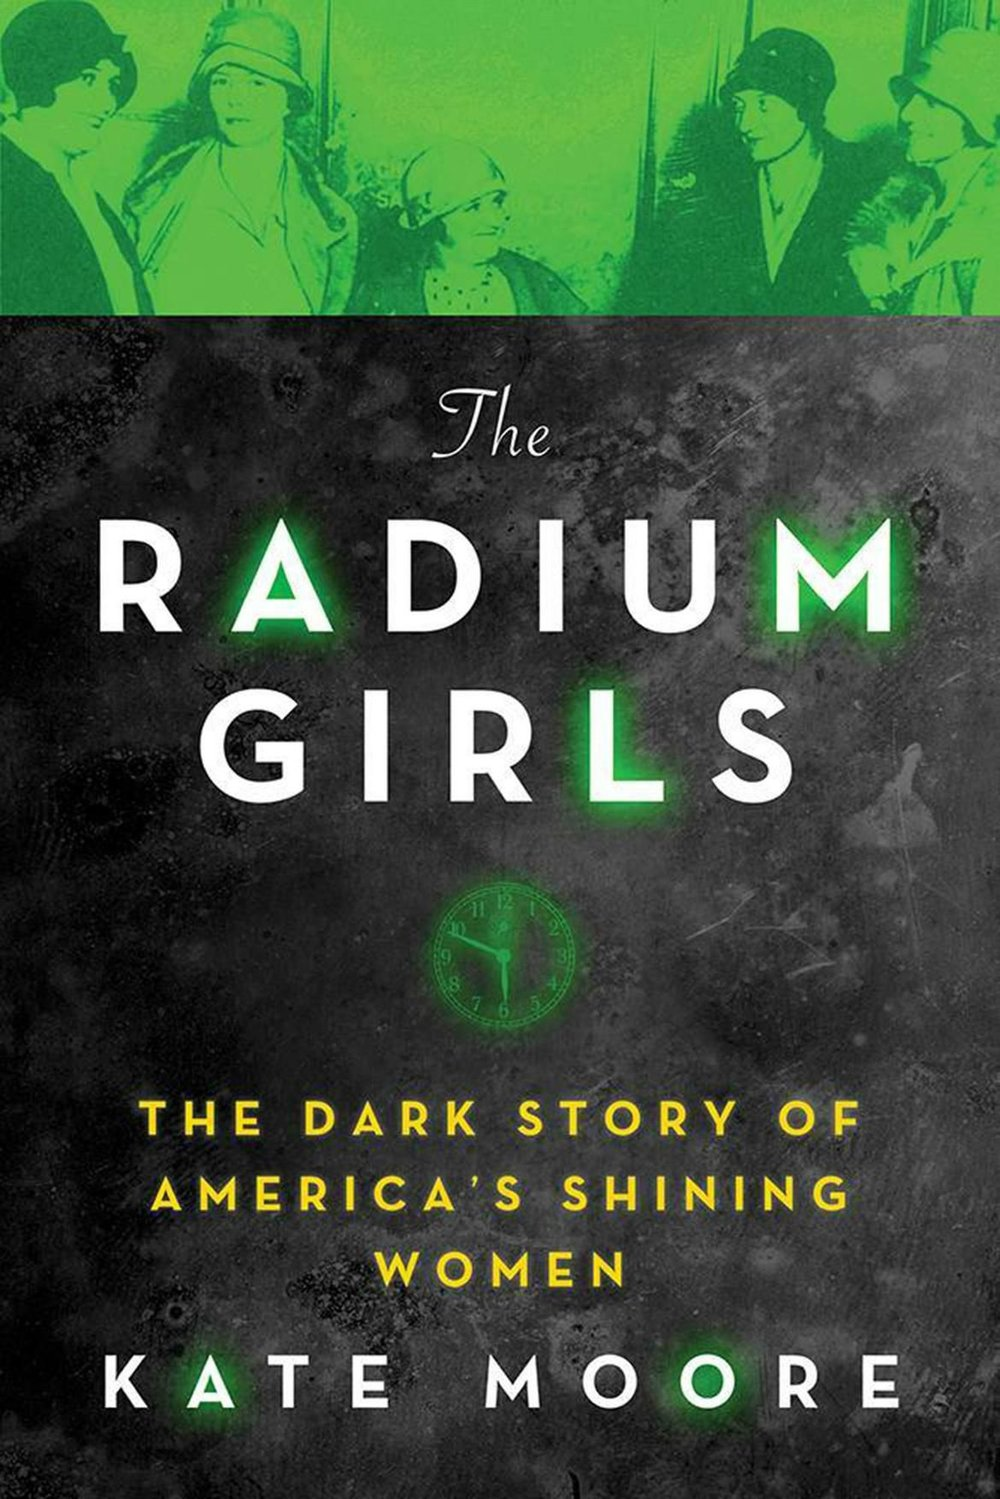 The Radium Girls- The Dark Story of America's Shining Women by Kate Moore.jpg